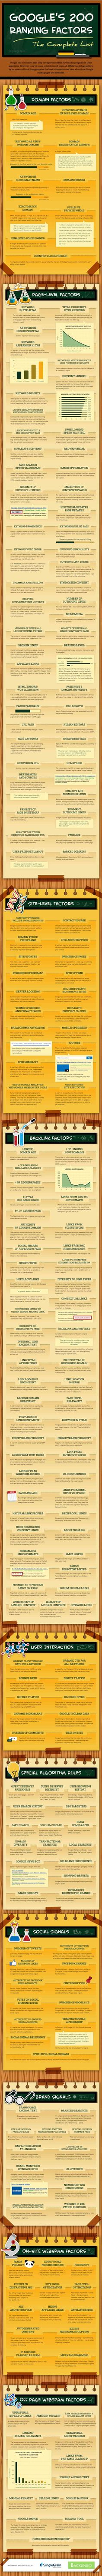 [Infographic] Google's Ranking Factors. An amazingly in-depth and lengthy look.